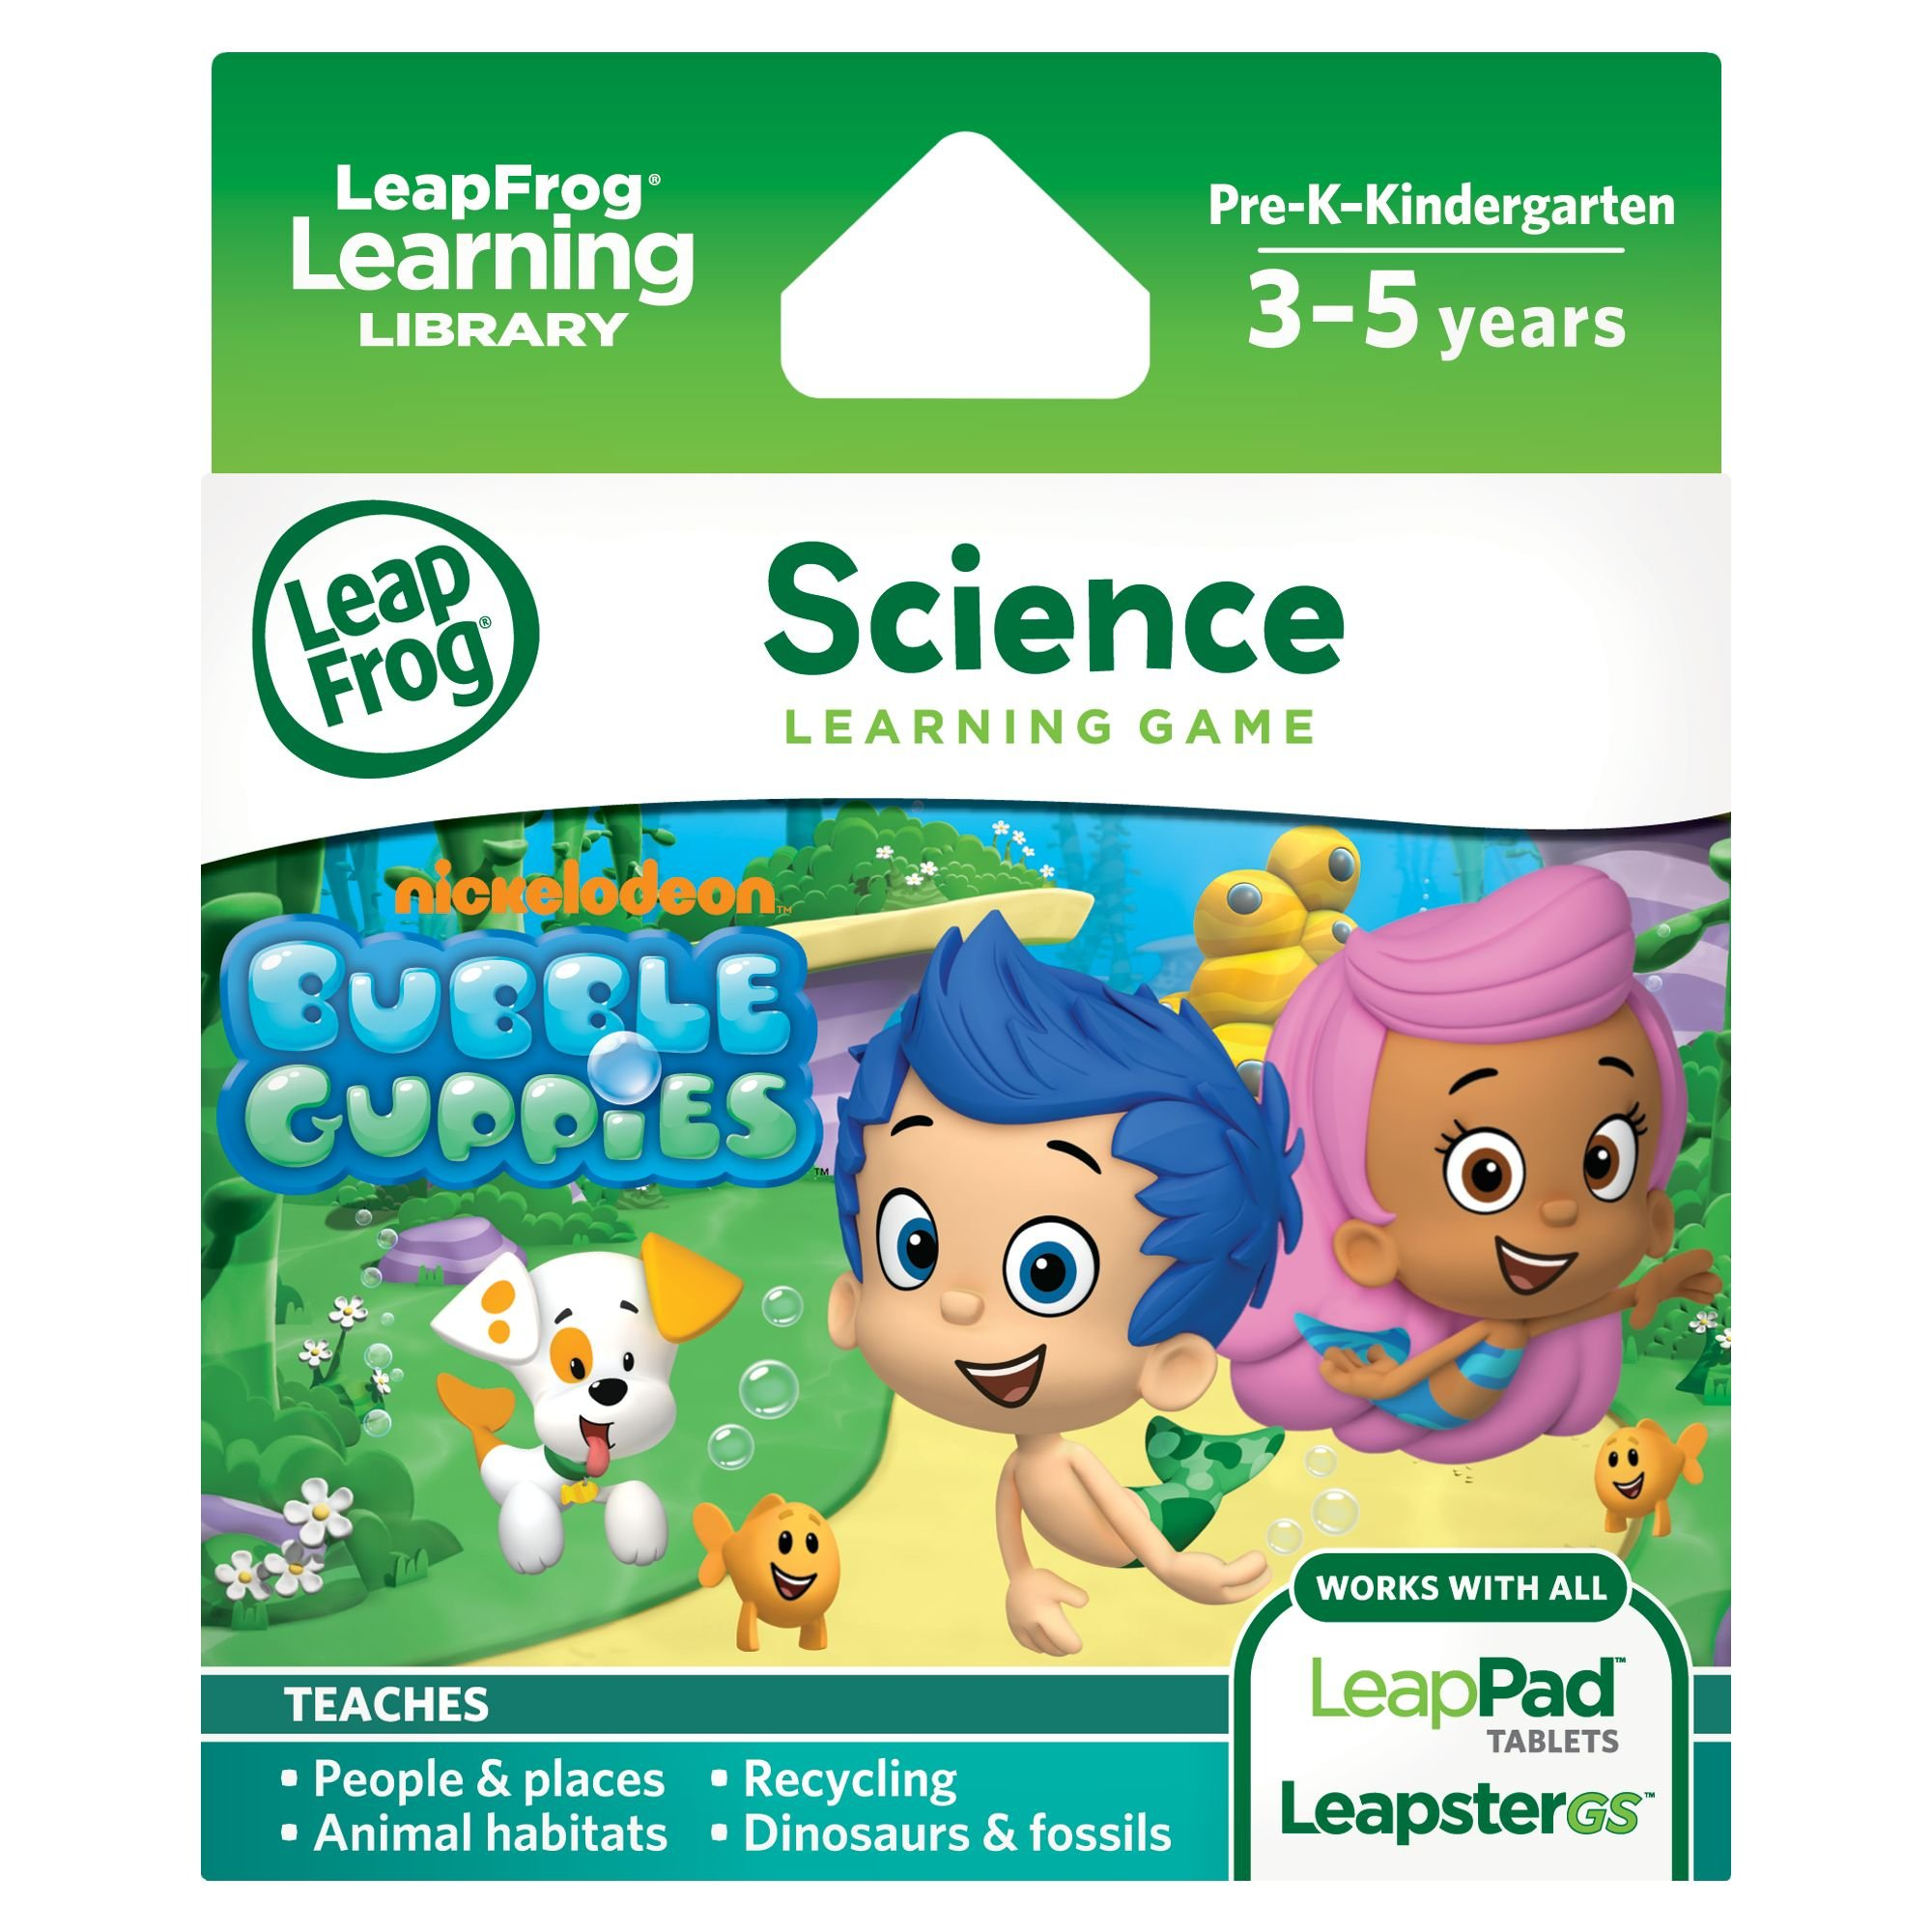 LeapFrog Learning Game: Bubble Guppies (for LeapPad Platinum, LeapPad Ultra, LeapPad1, LeapPad2, LeapPad3, Leapster Explorer, LeapsterGS Explorer) by LeapFrog (Image #1)